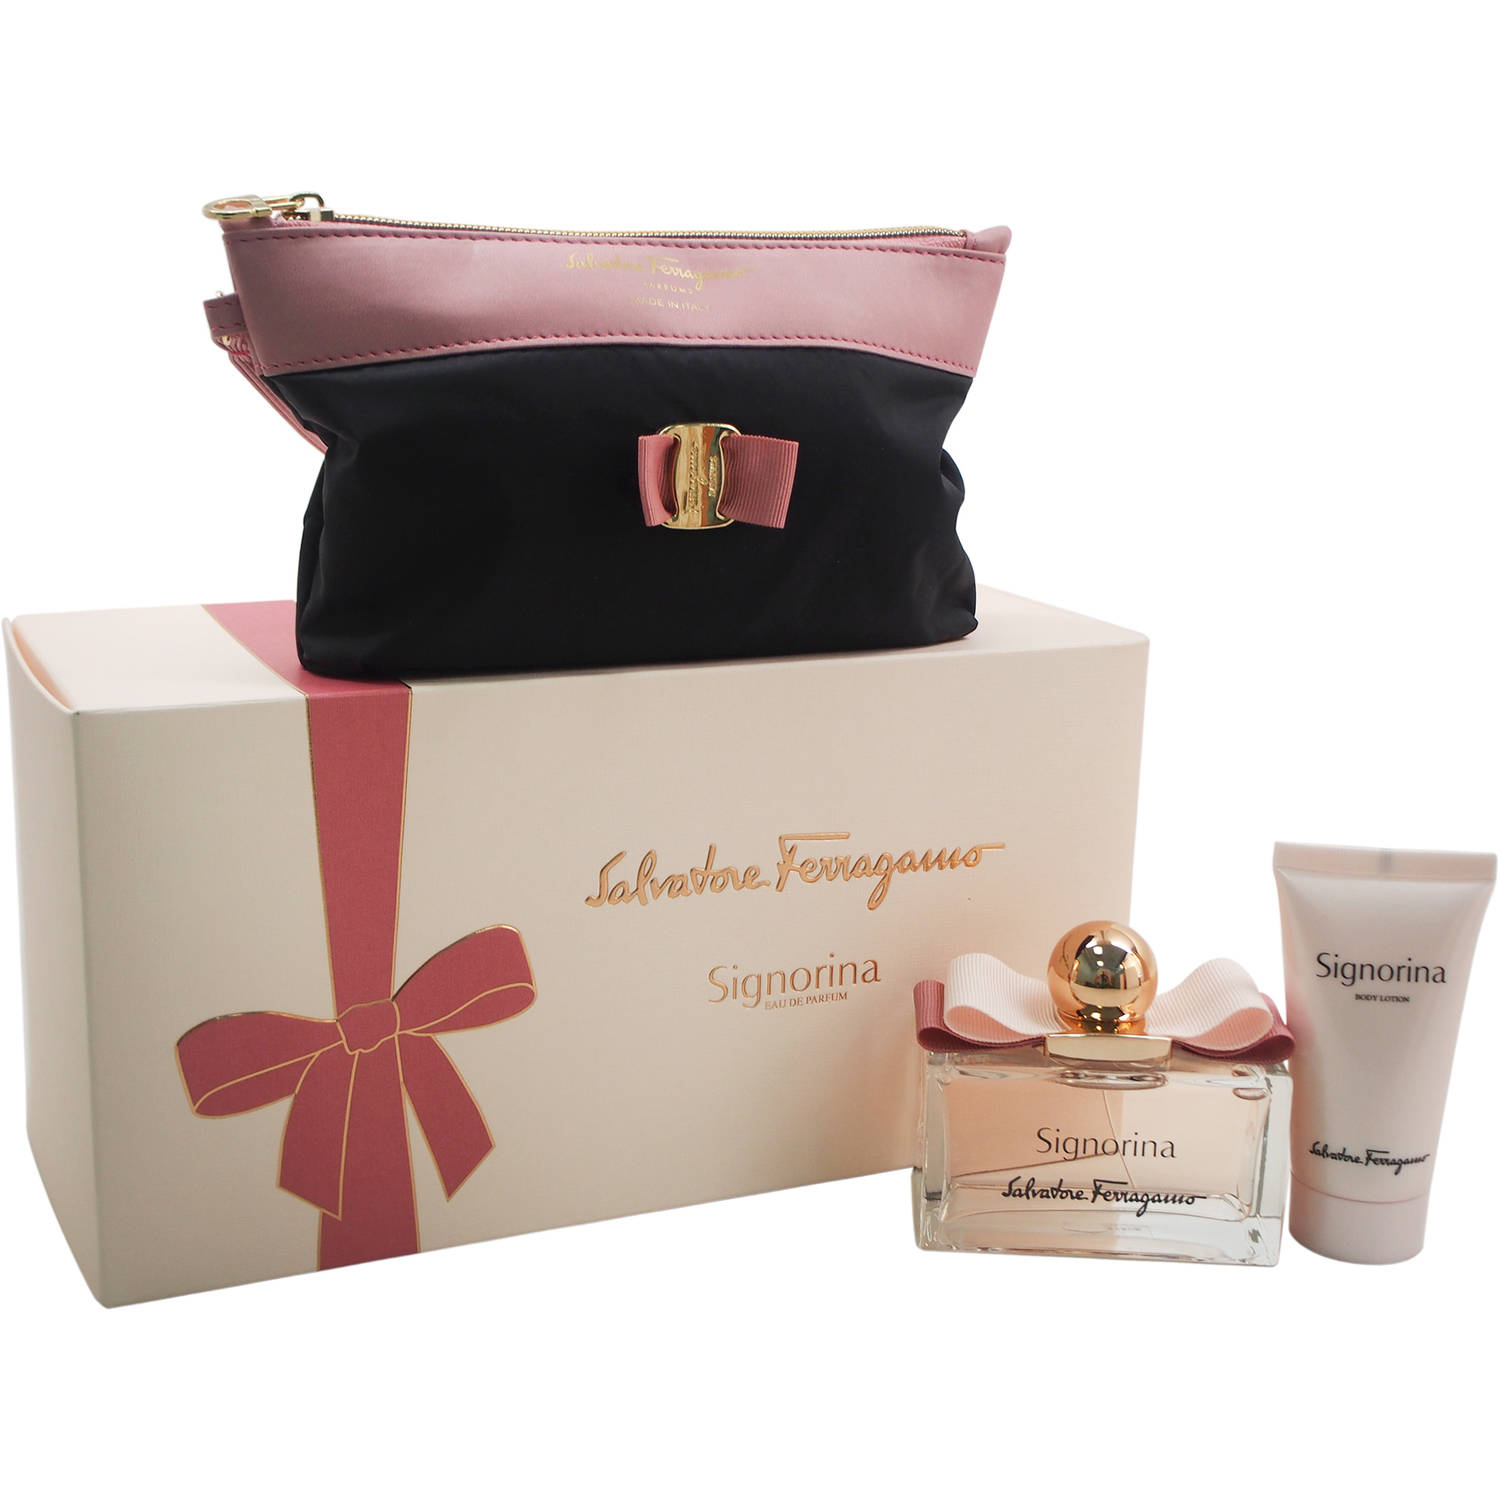 Signorina by Salvatore Ferragamo for Women Gift Set, 3 pc